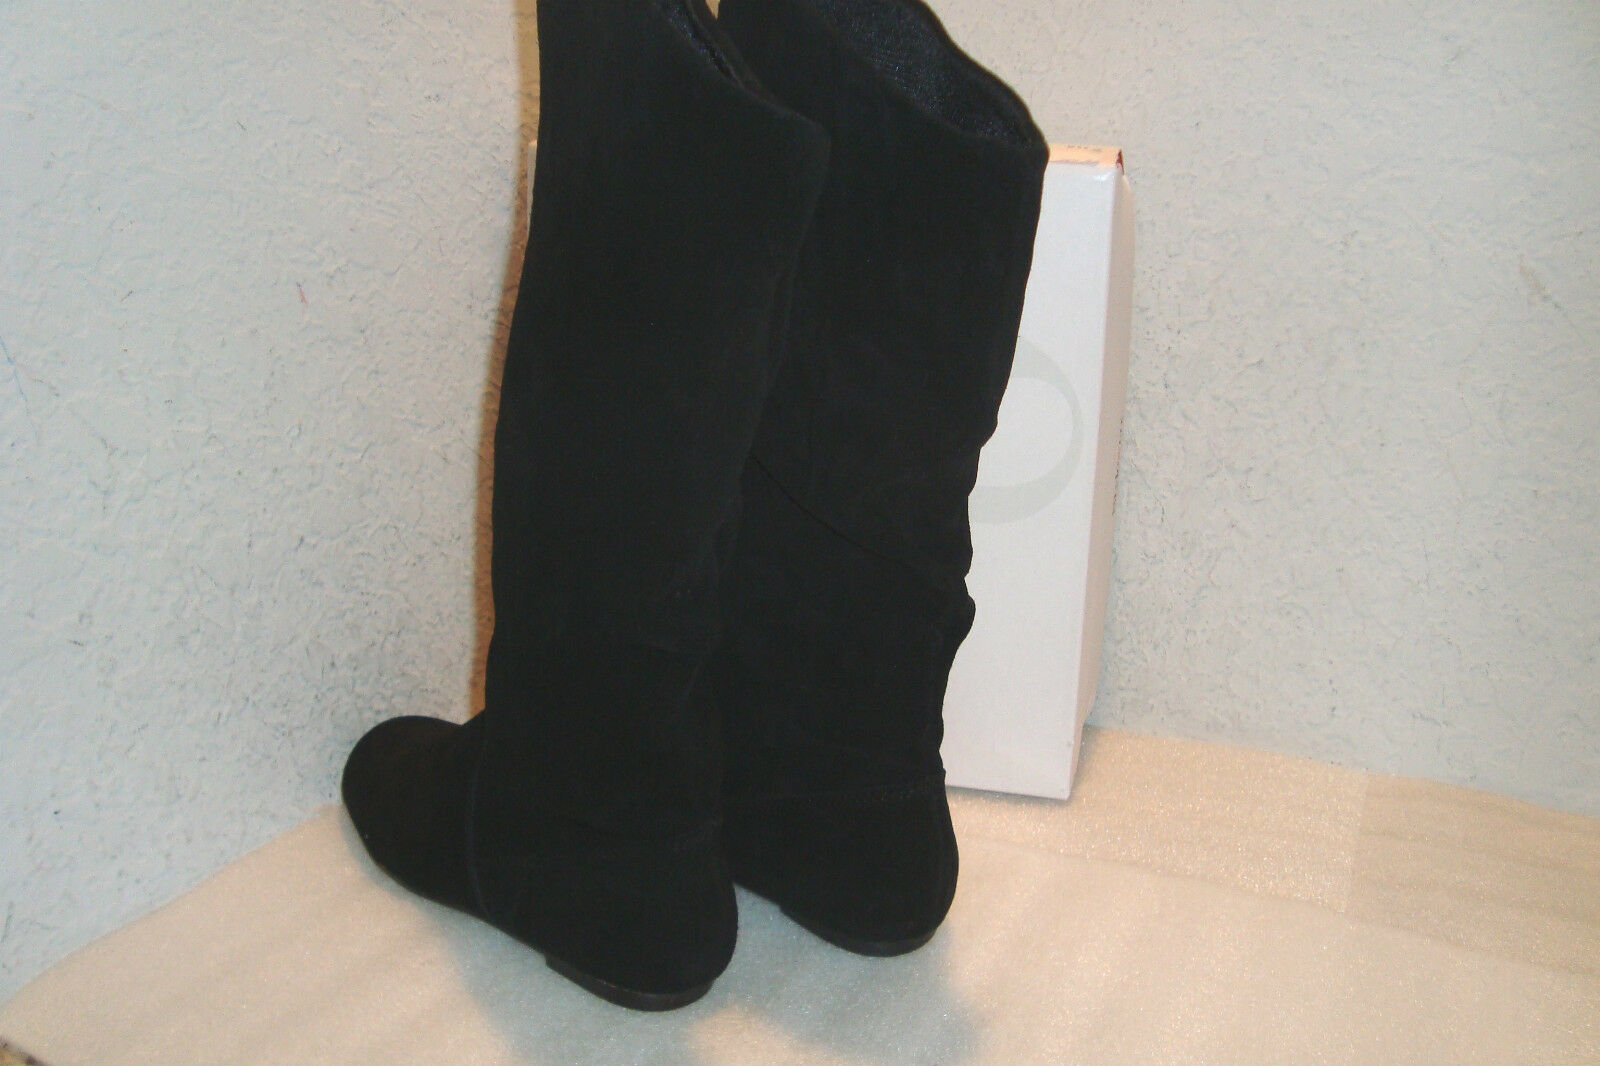 Clarks Leather Bendables Stroll Valley Black Nubuck Leather Clarks Heeled Ankle Boots 11 eb17b9